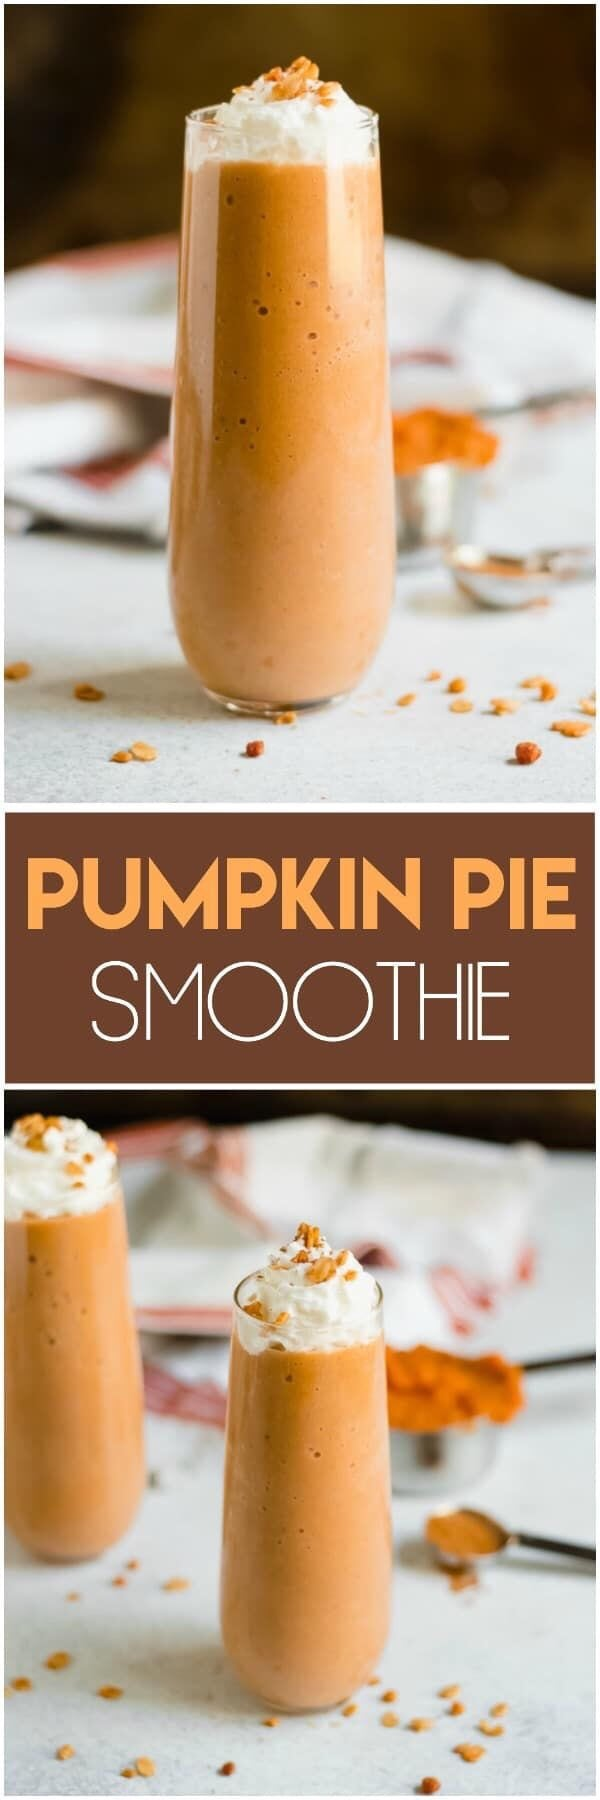 15 Delicious Smoothies To Make This Fall (Part 2) - Healthy Fall Smoothie Recipes, Healthy Fall Smoothie, fall Smoothie Recipes, fall Smoothie